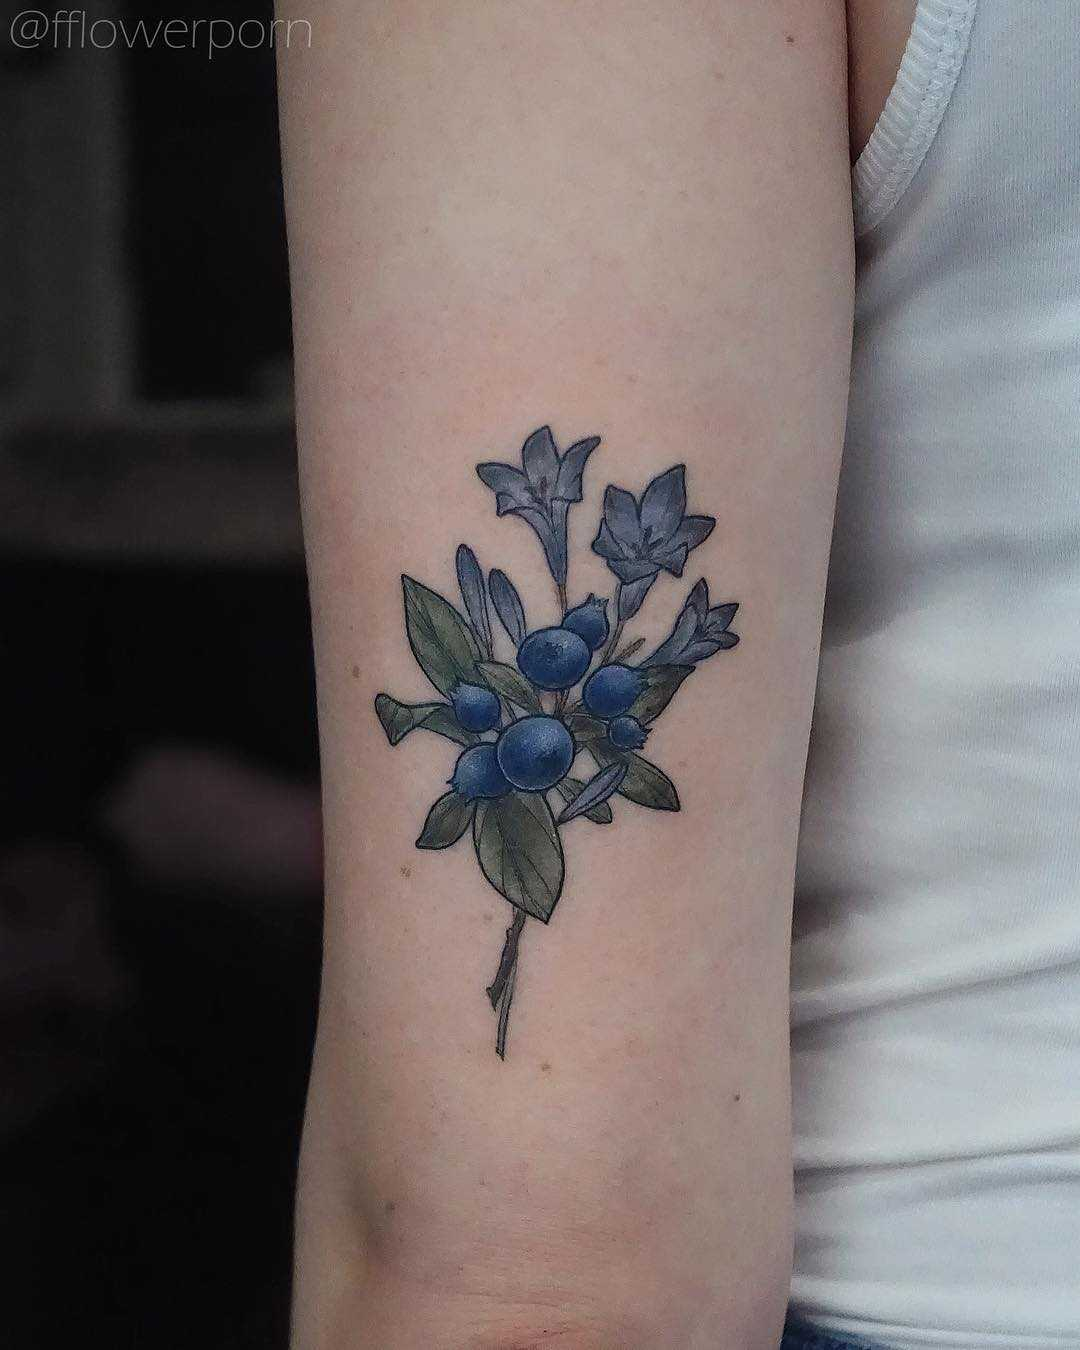 Blueberry with agapanthus flowers tattoo